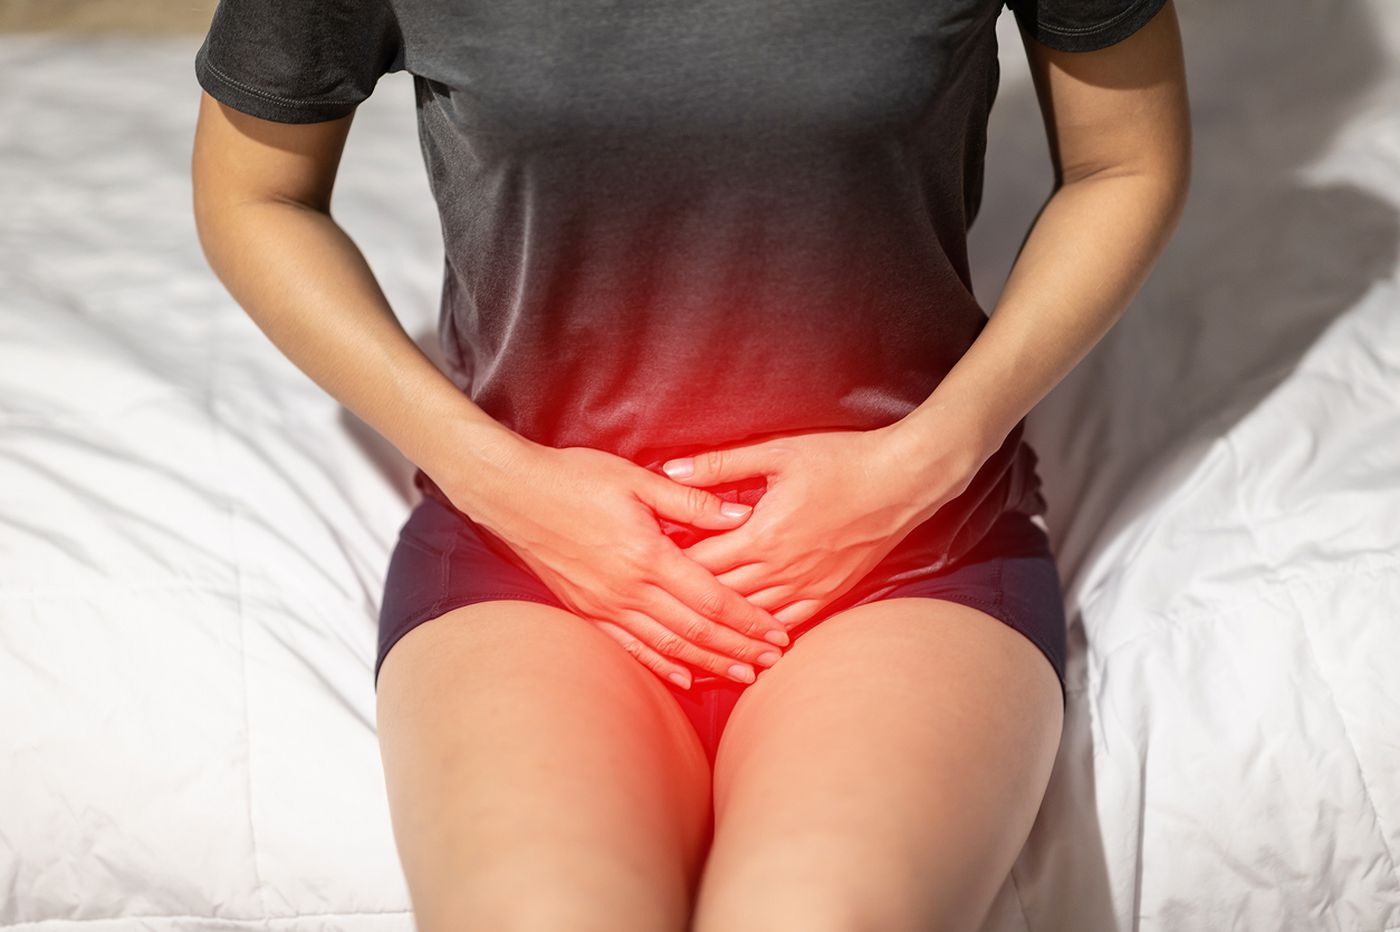 Q&A: What are pelvic floor disorders, and how are they treated?